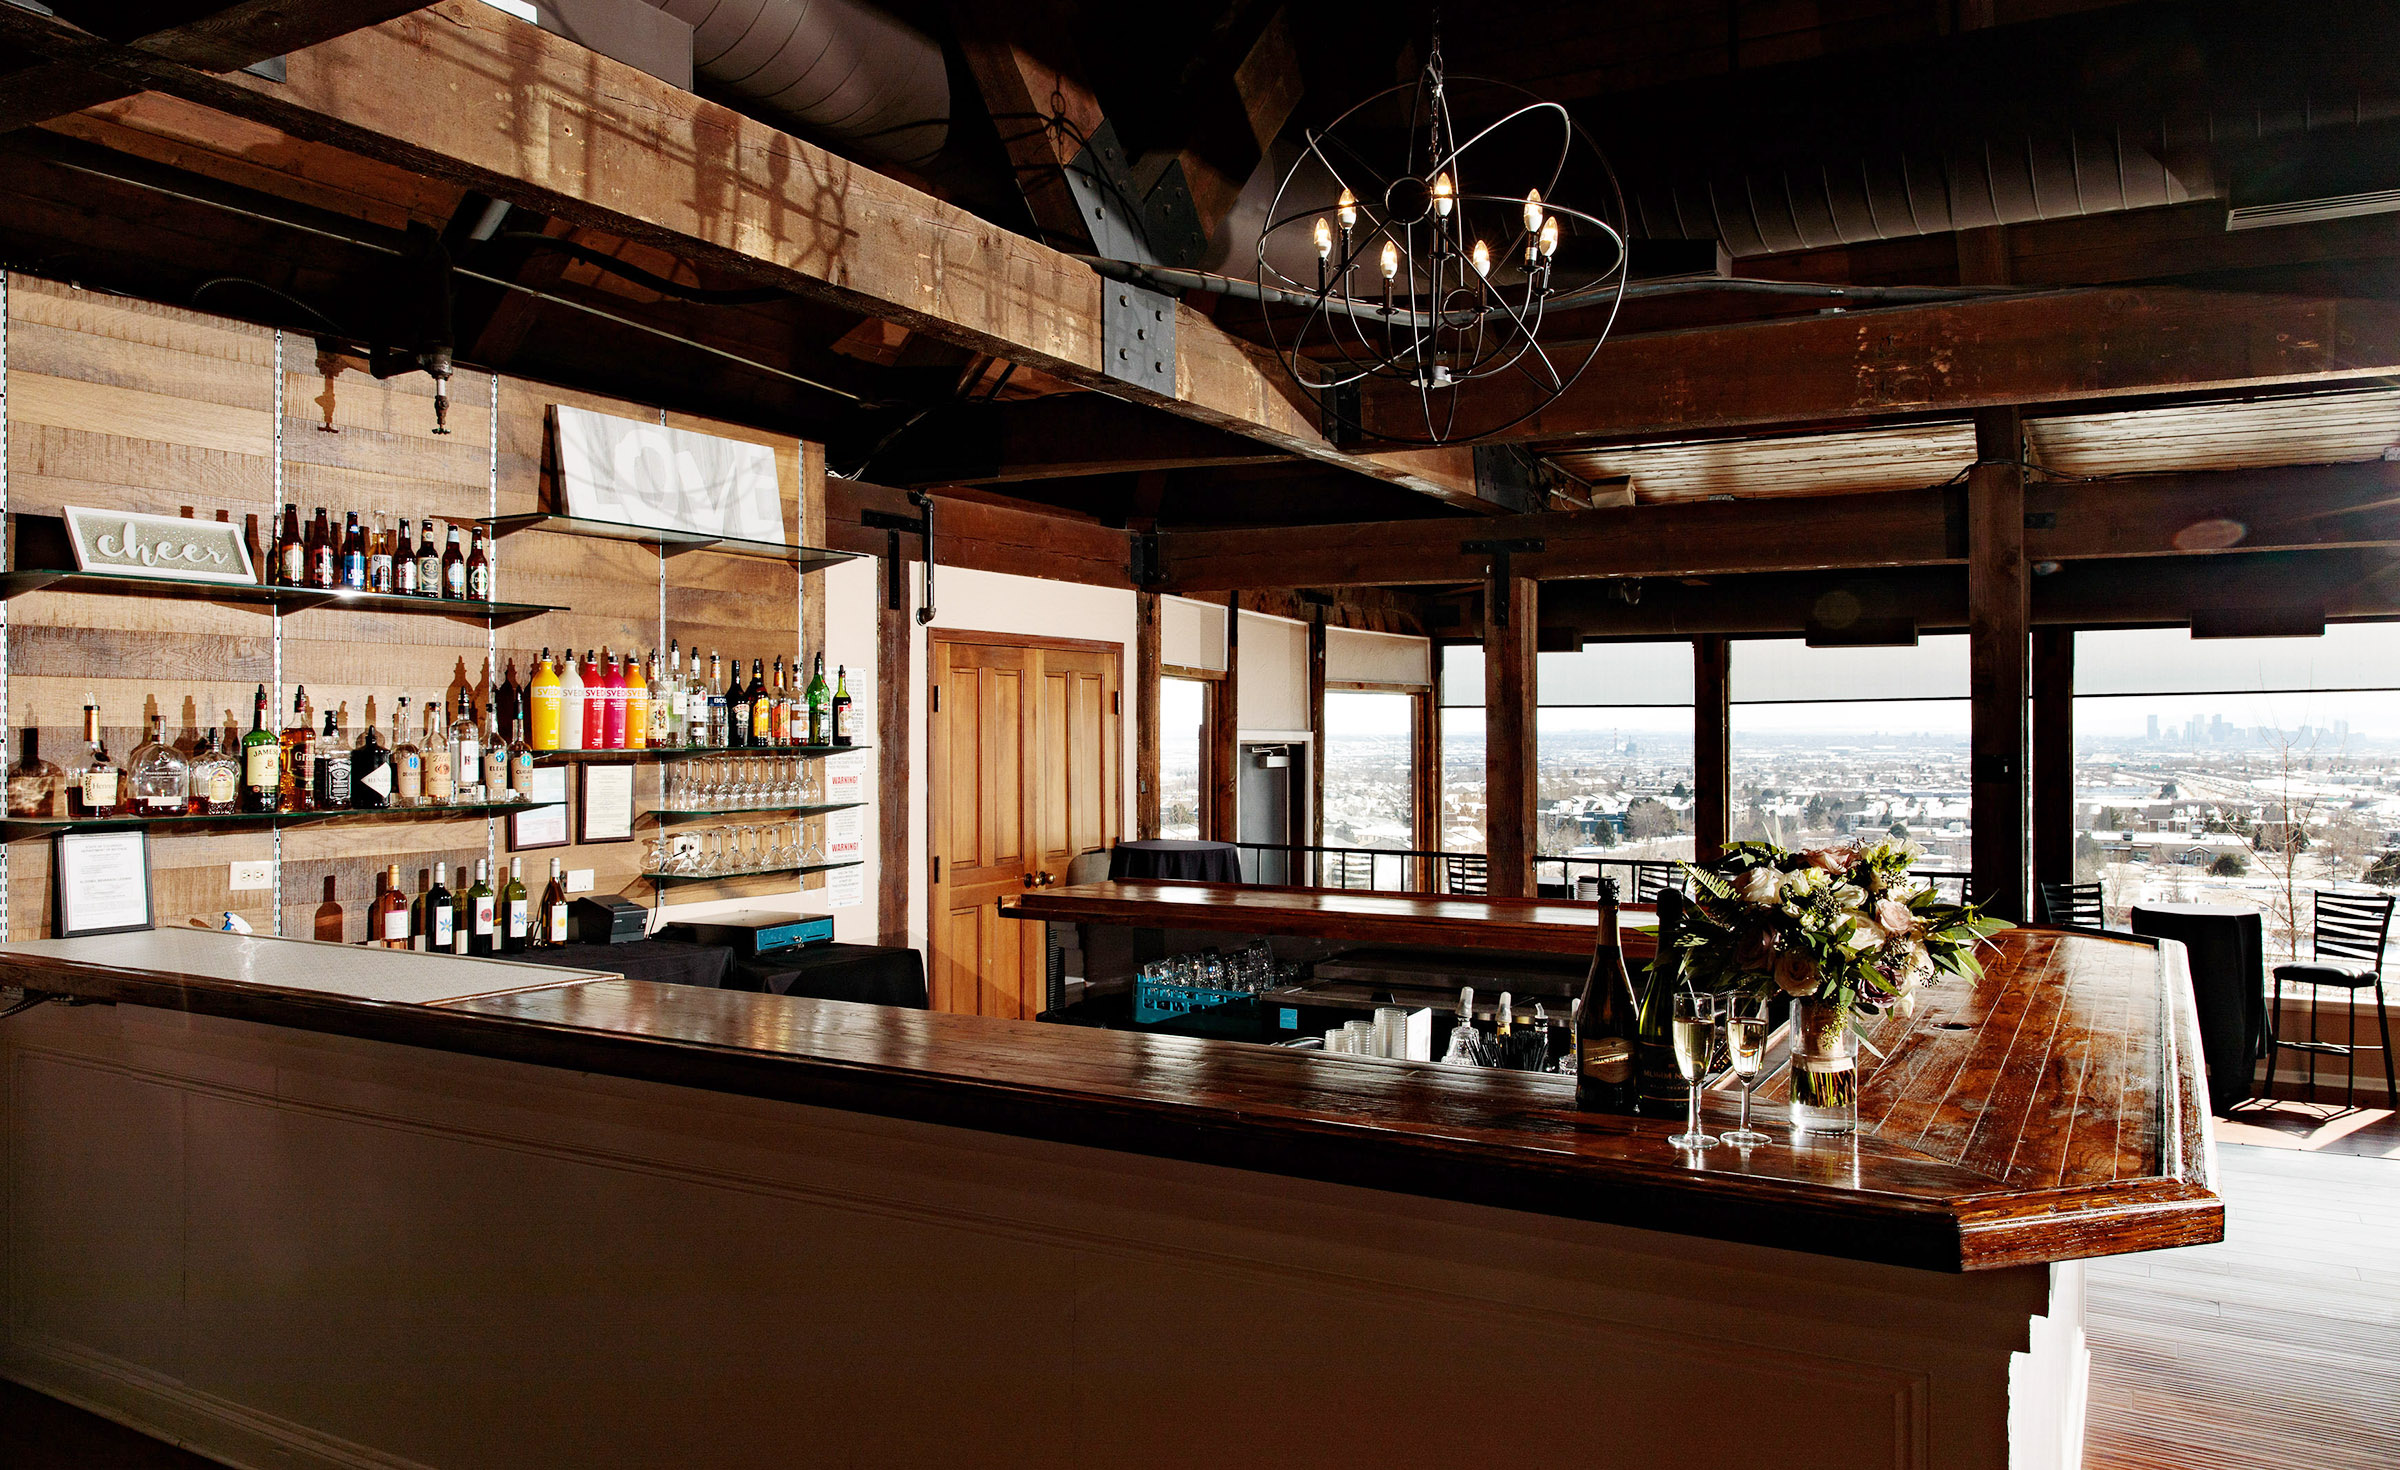 Handsome Built-In Bar - Brittany Hill - Thornton, Colorado - Adams County - Weld County - Wedgewood Weddings